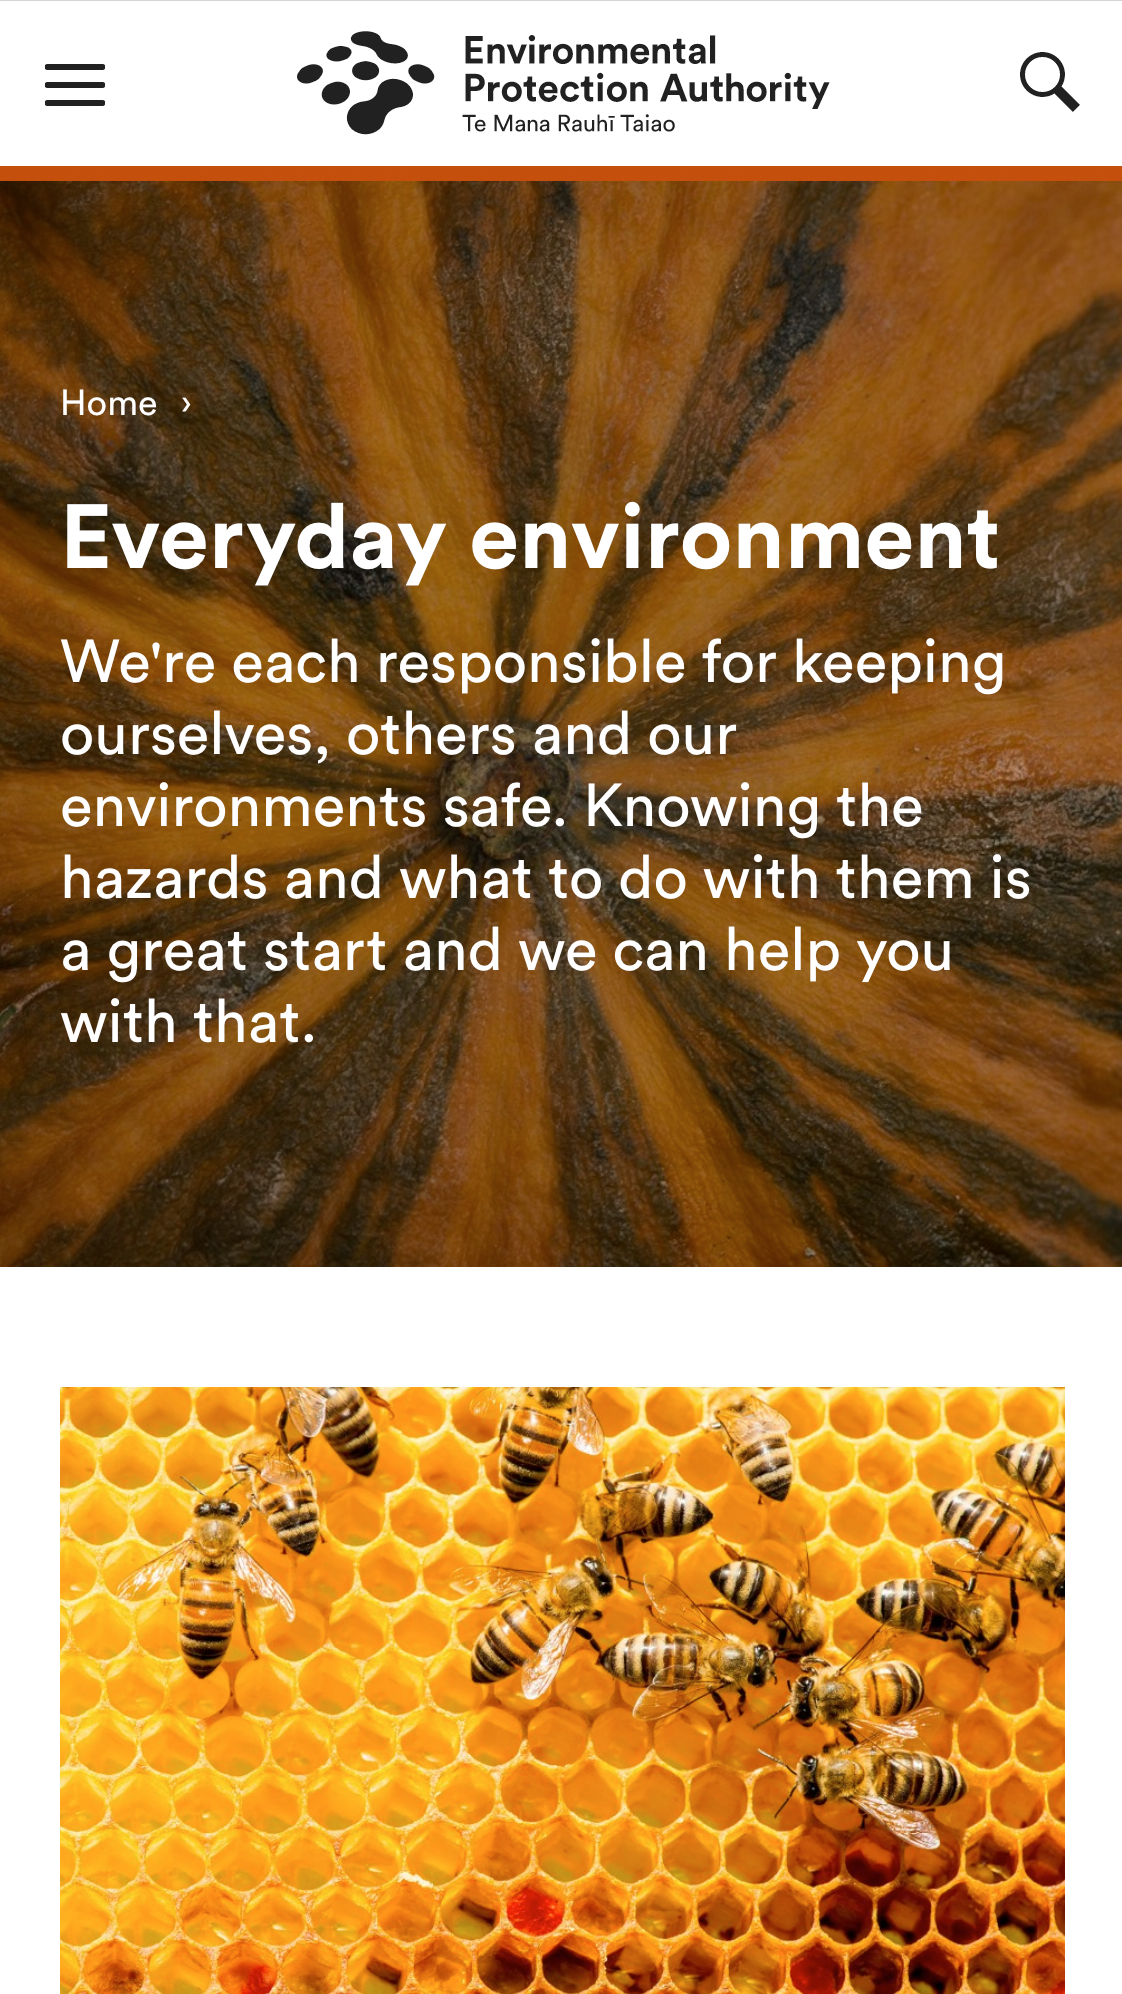 Environmental Protection Authority (SilverStripe)